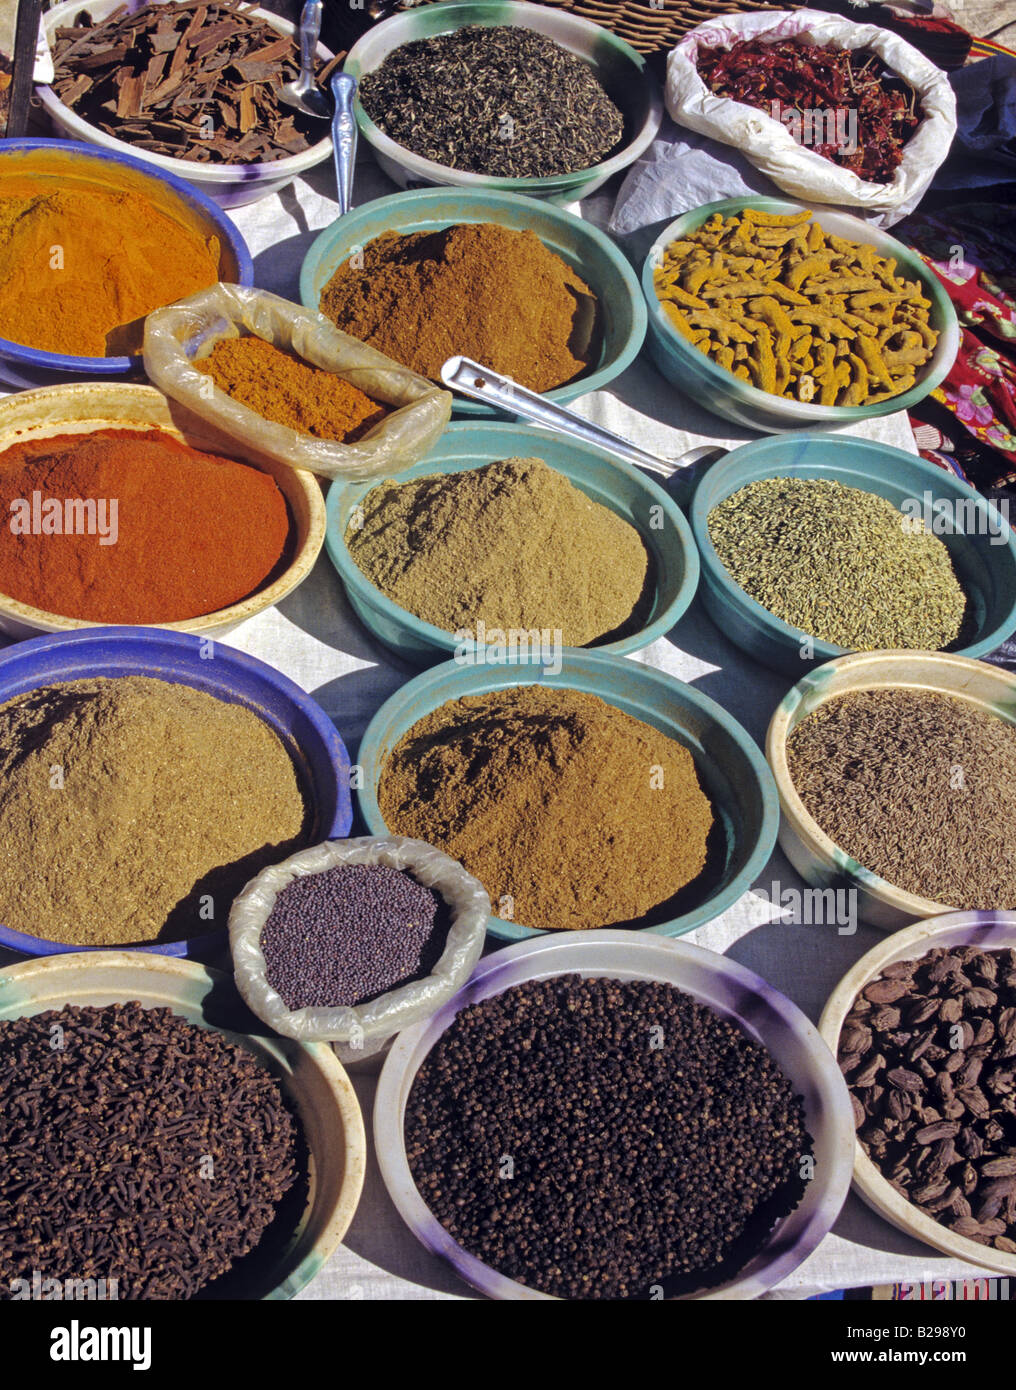 Anjuna Market Goa State India Date 15 06 2008 Ref ZB548 115573 0014 COMPULSORY CREDIT World Pictures Photoshot - Stock Image